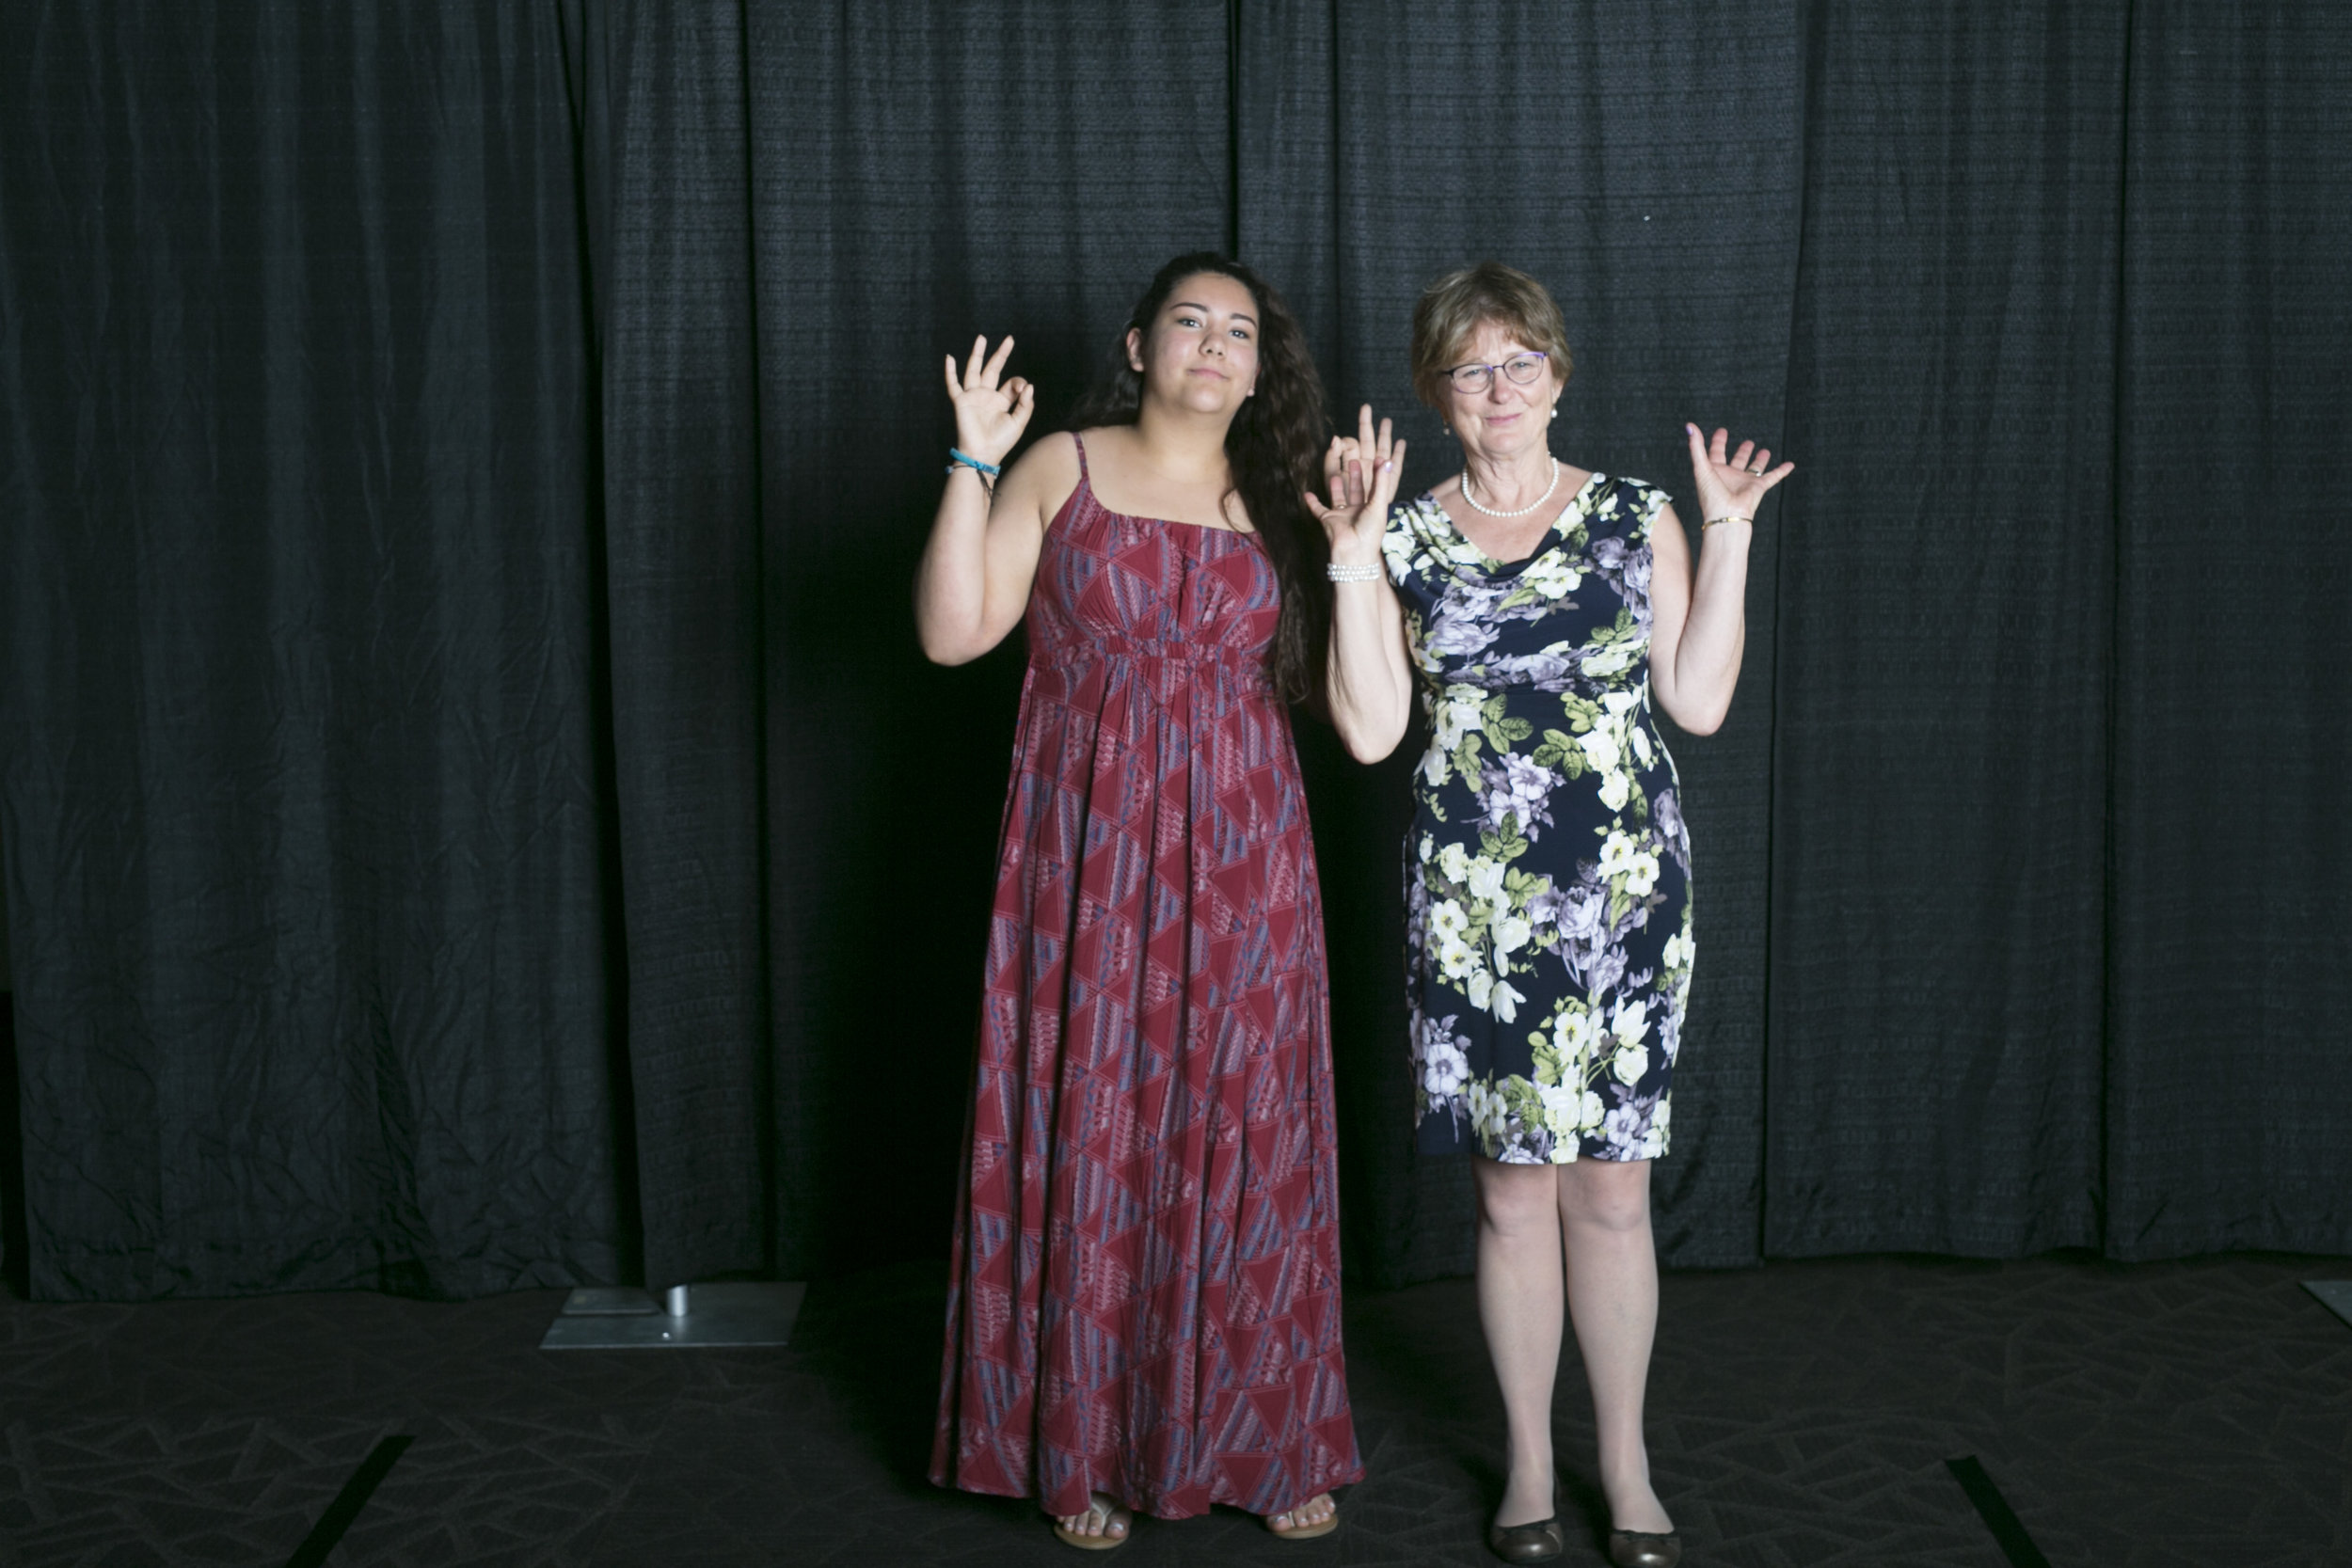 wedding photo booth-48.jpg